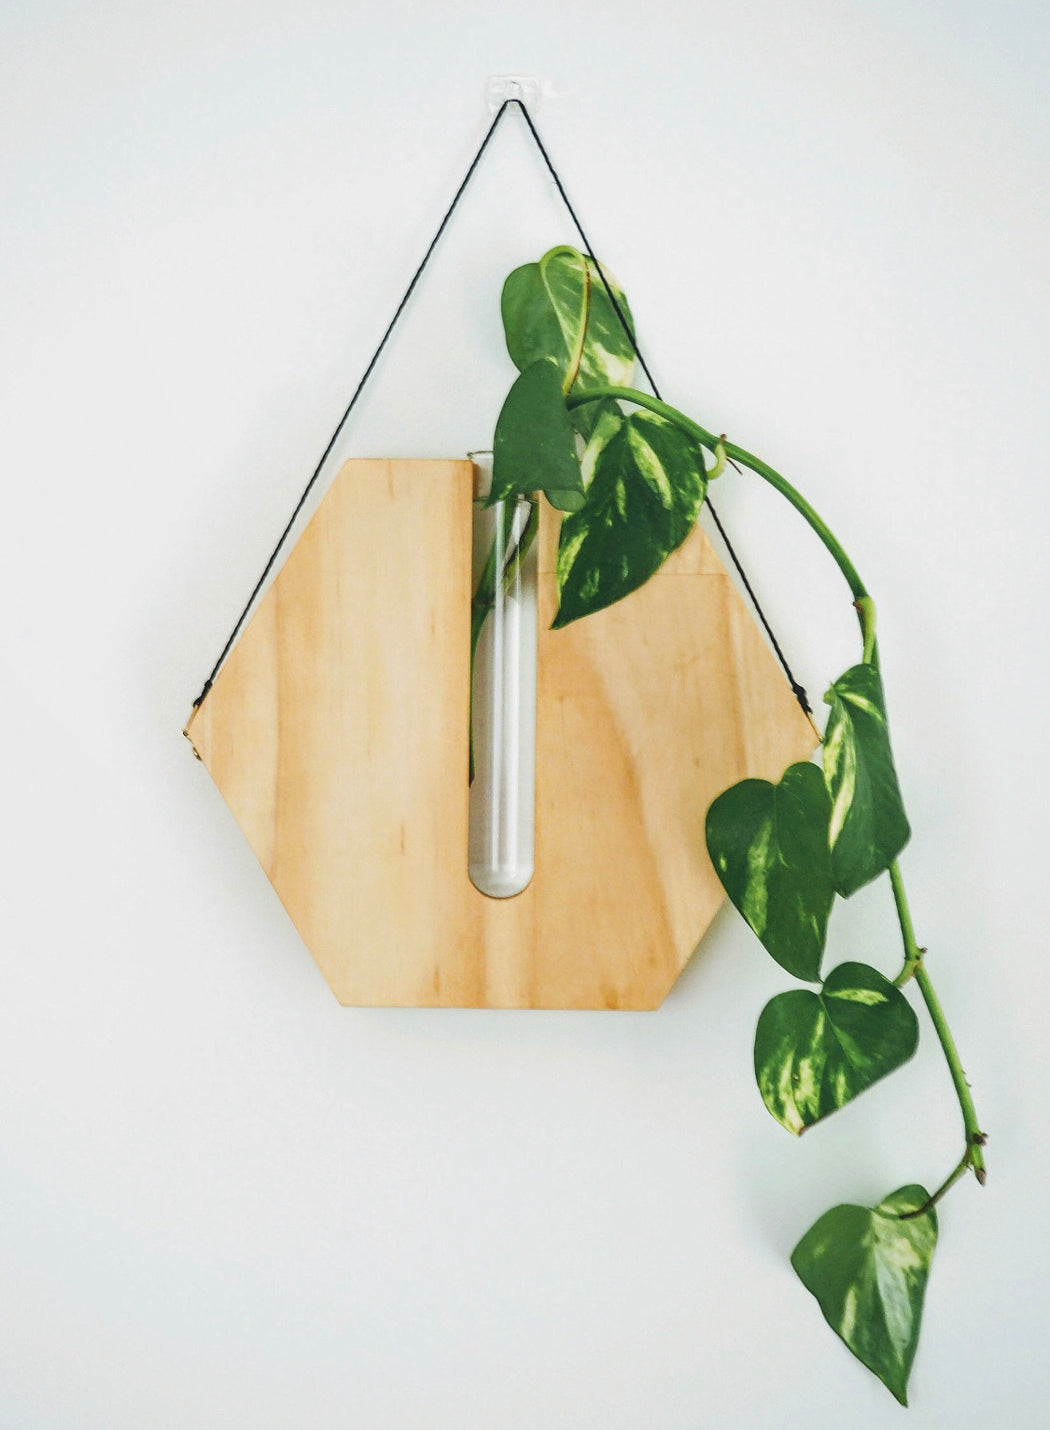 Timber wall hanger - Honeycomb, Natural